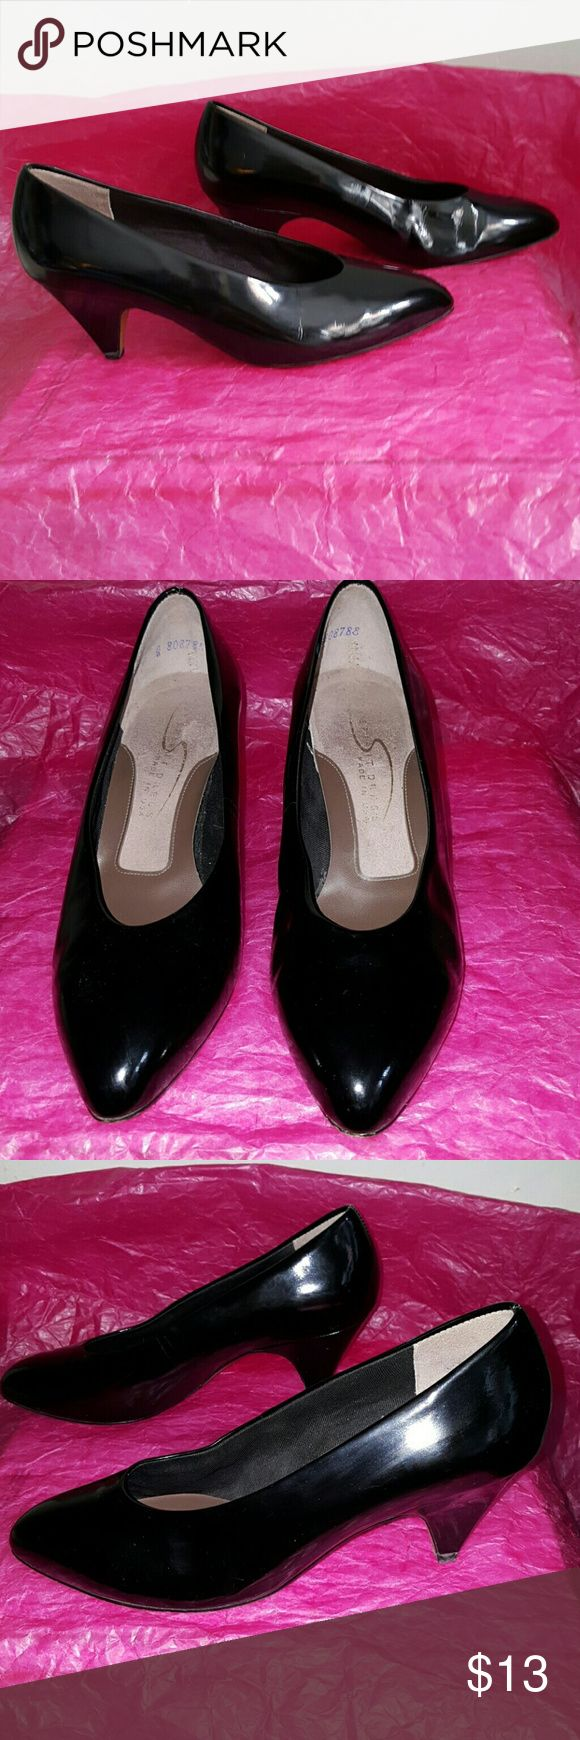 """Easy spirit dress black patent shoes size 7 2 1/4"""" covered heel. Leather sole. Left heel has a long scub. Made in USA. Easy Spirit Shoes Heels"""